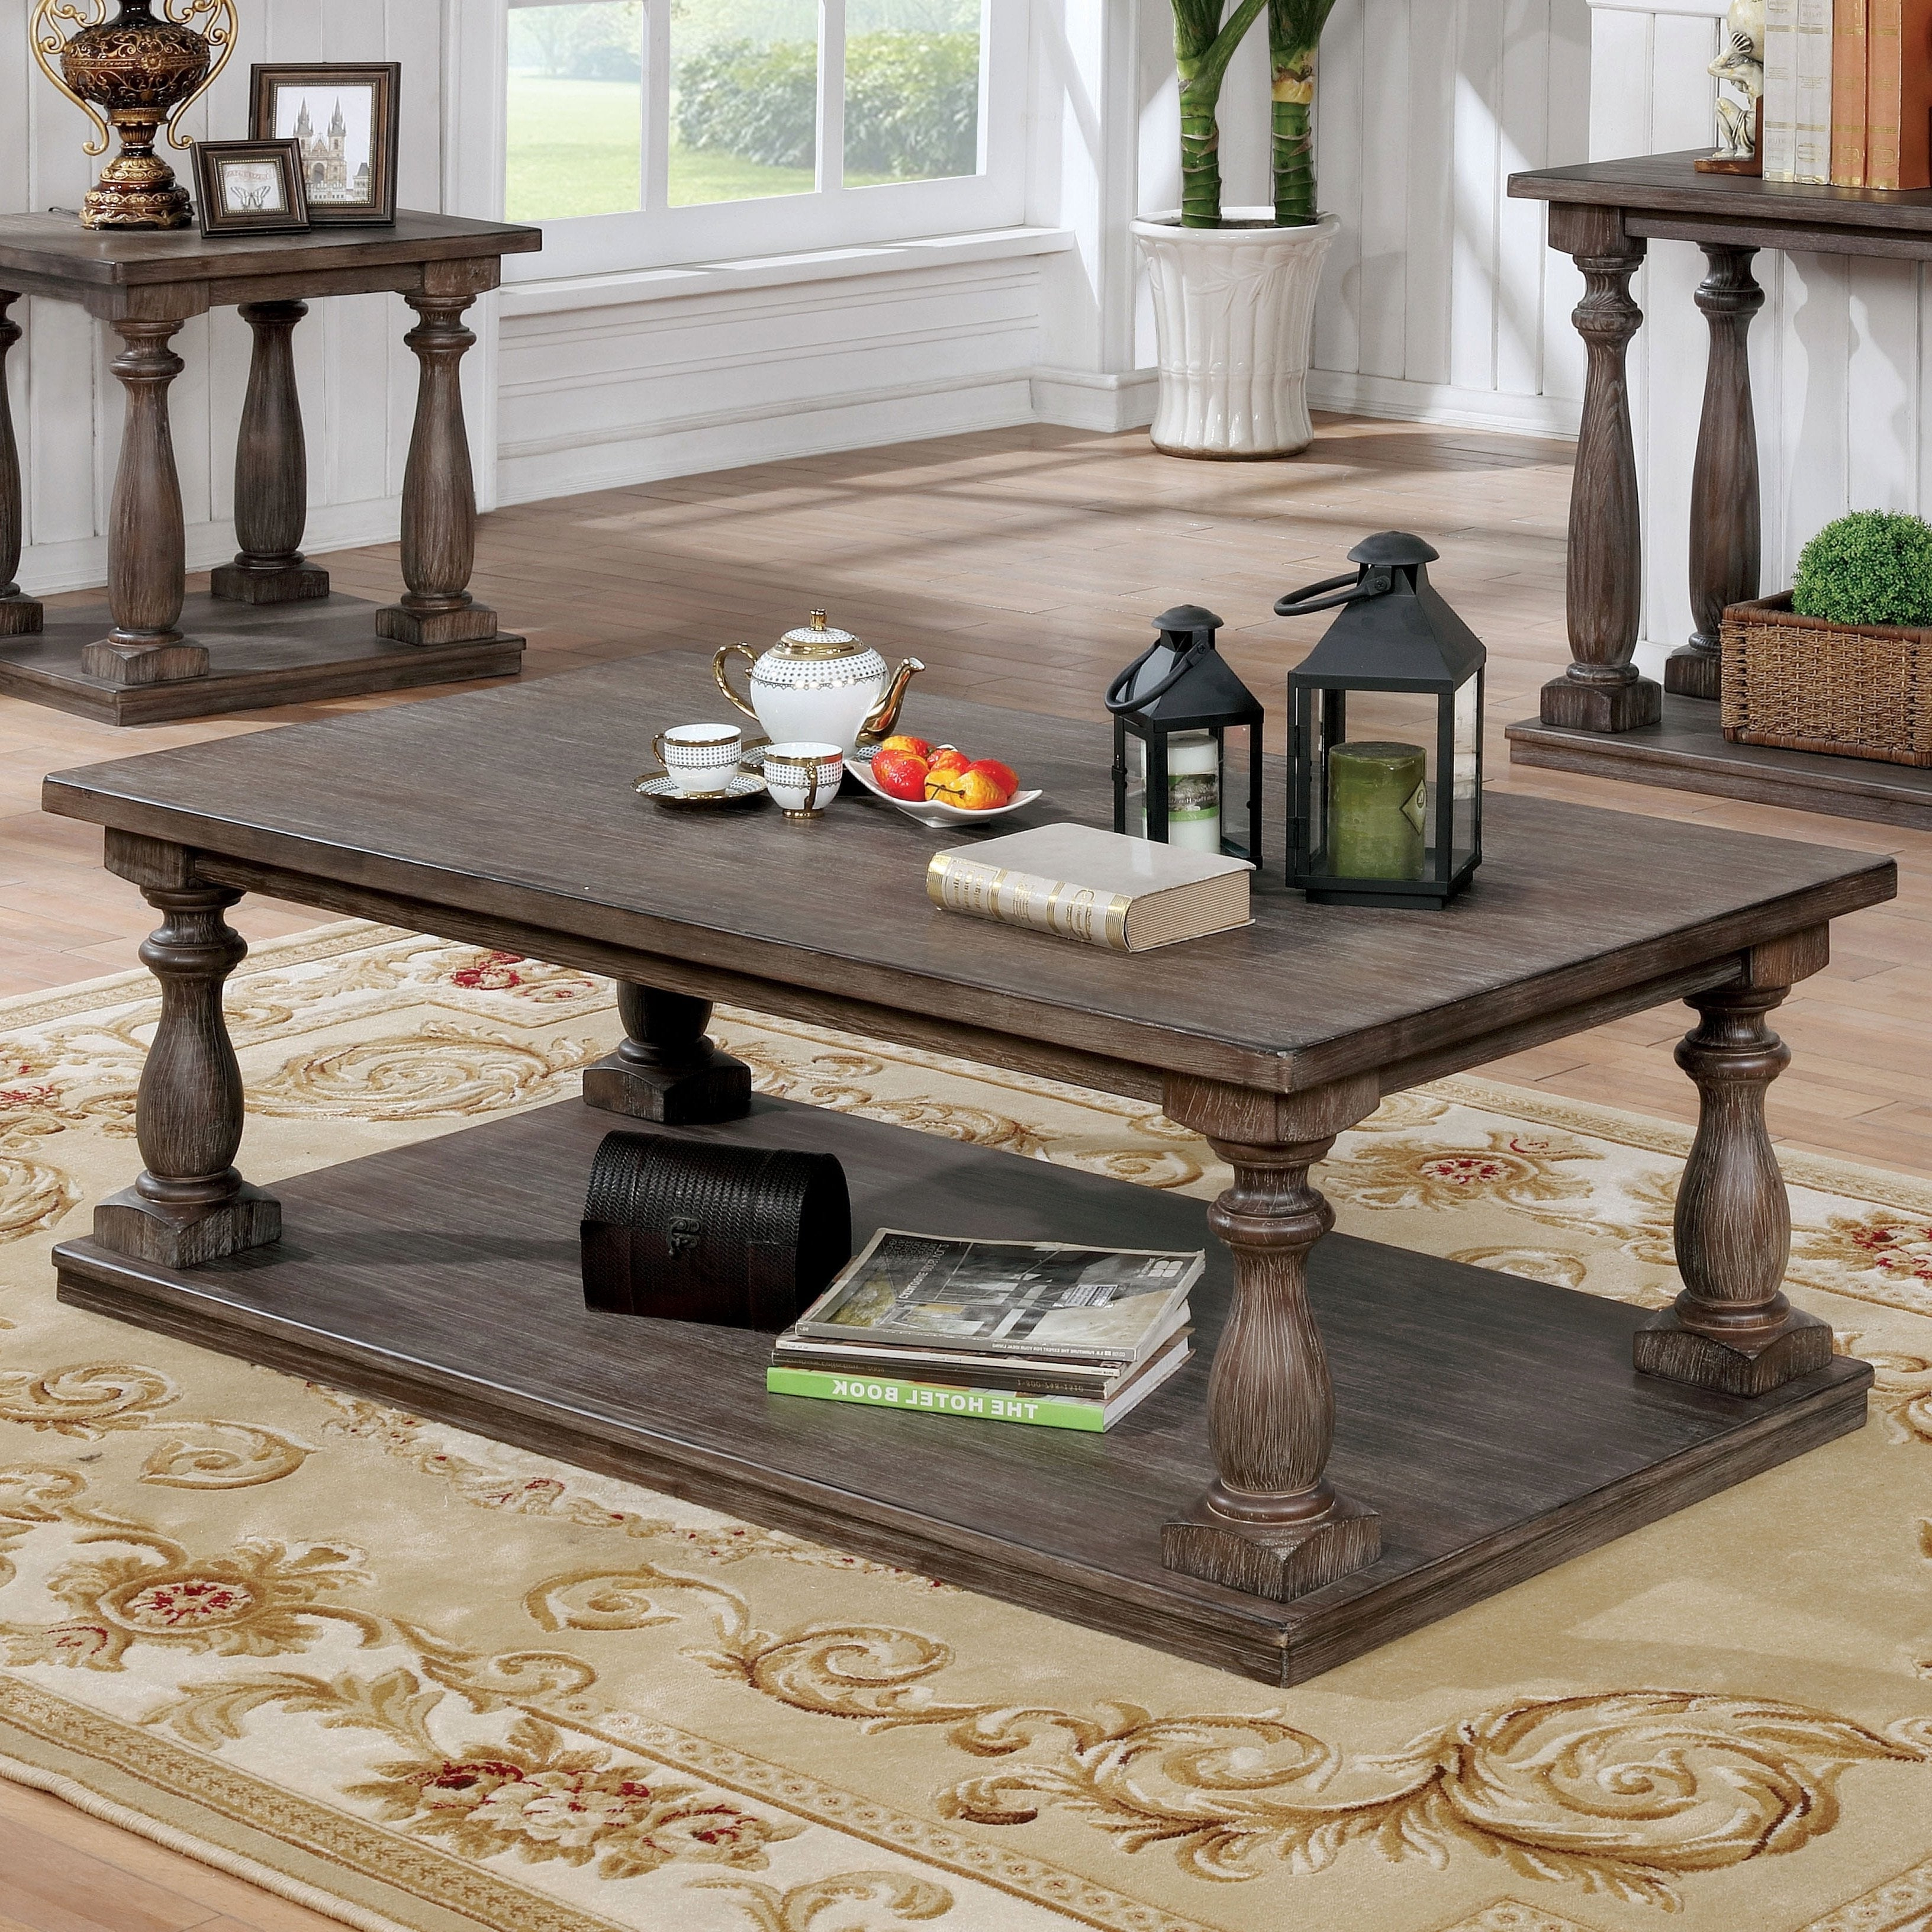 Fashionable Jessa Rustic Country 54 Inch Coffee Tables Within Jessa Rustic Country 54 Inch Coffee Tablefoa (View 2 of 20)